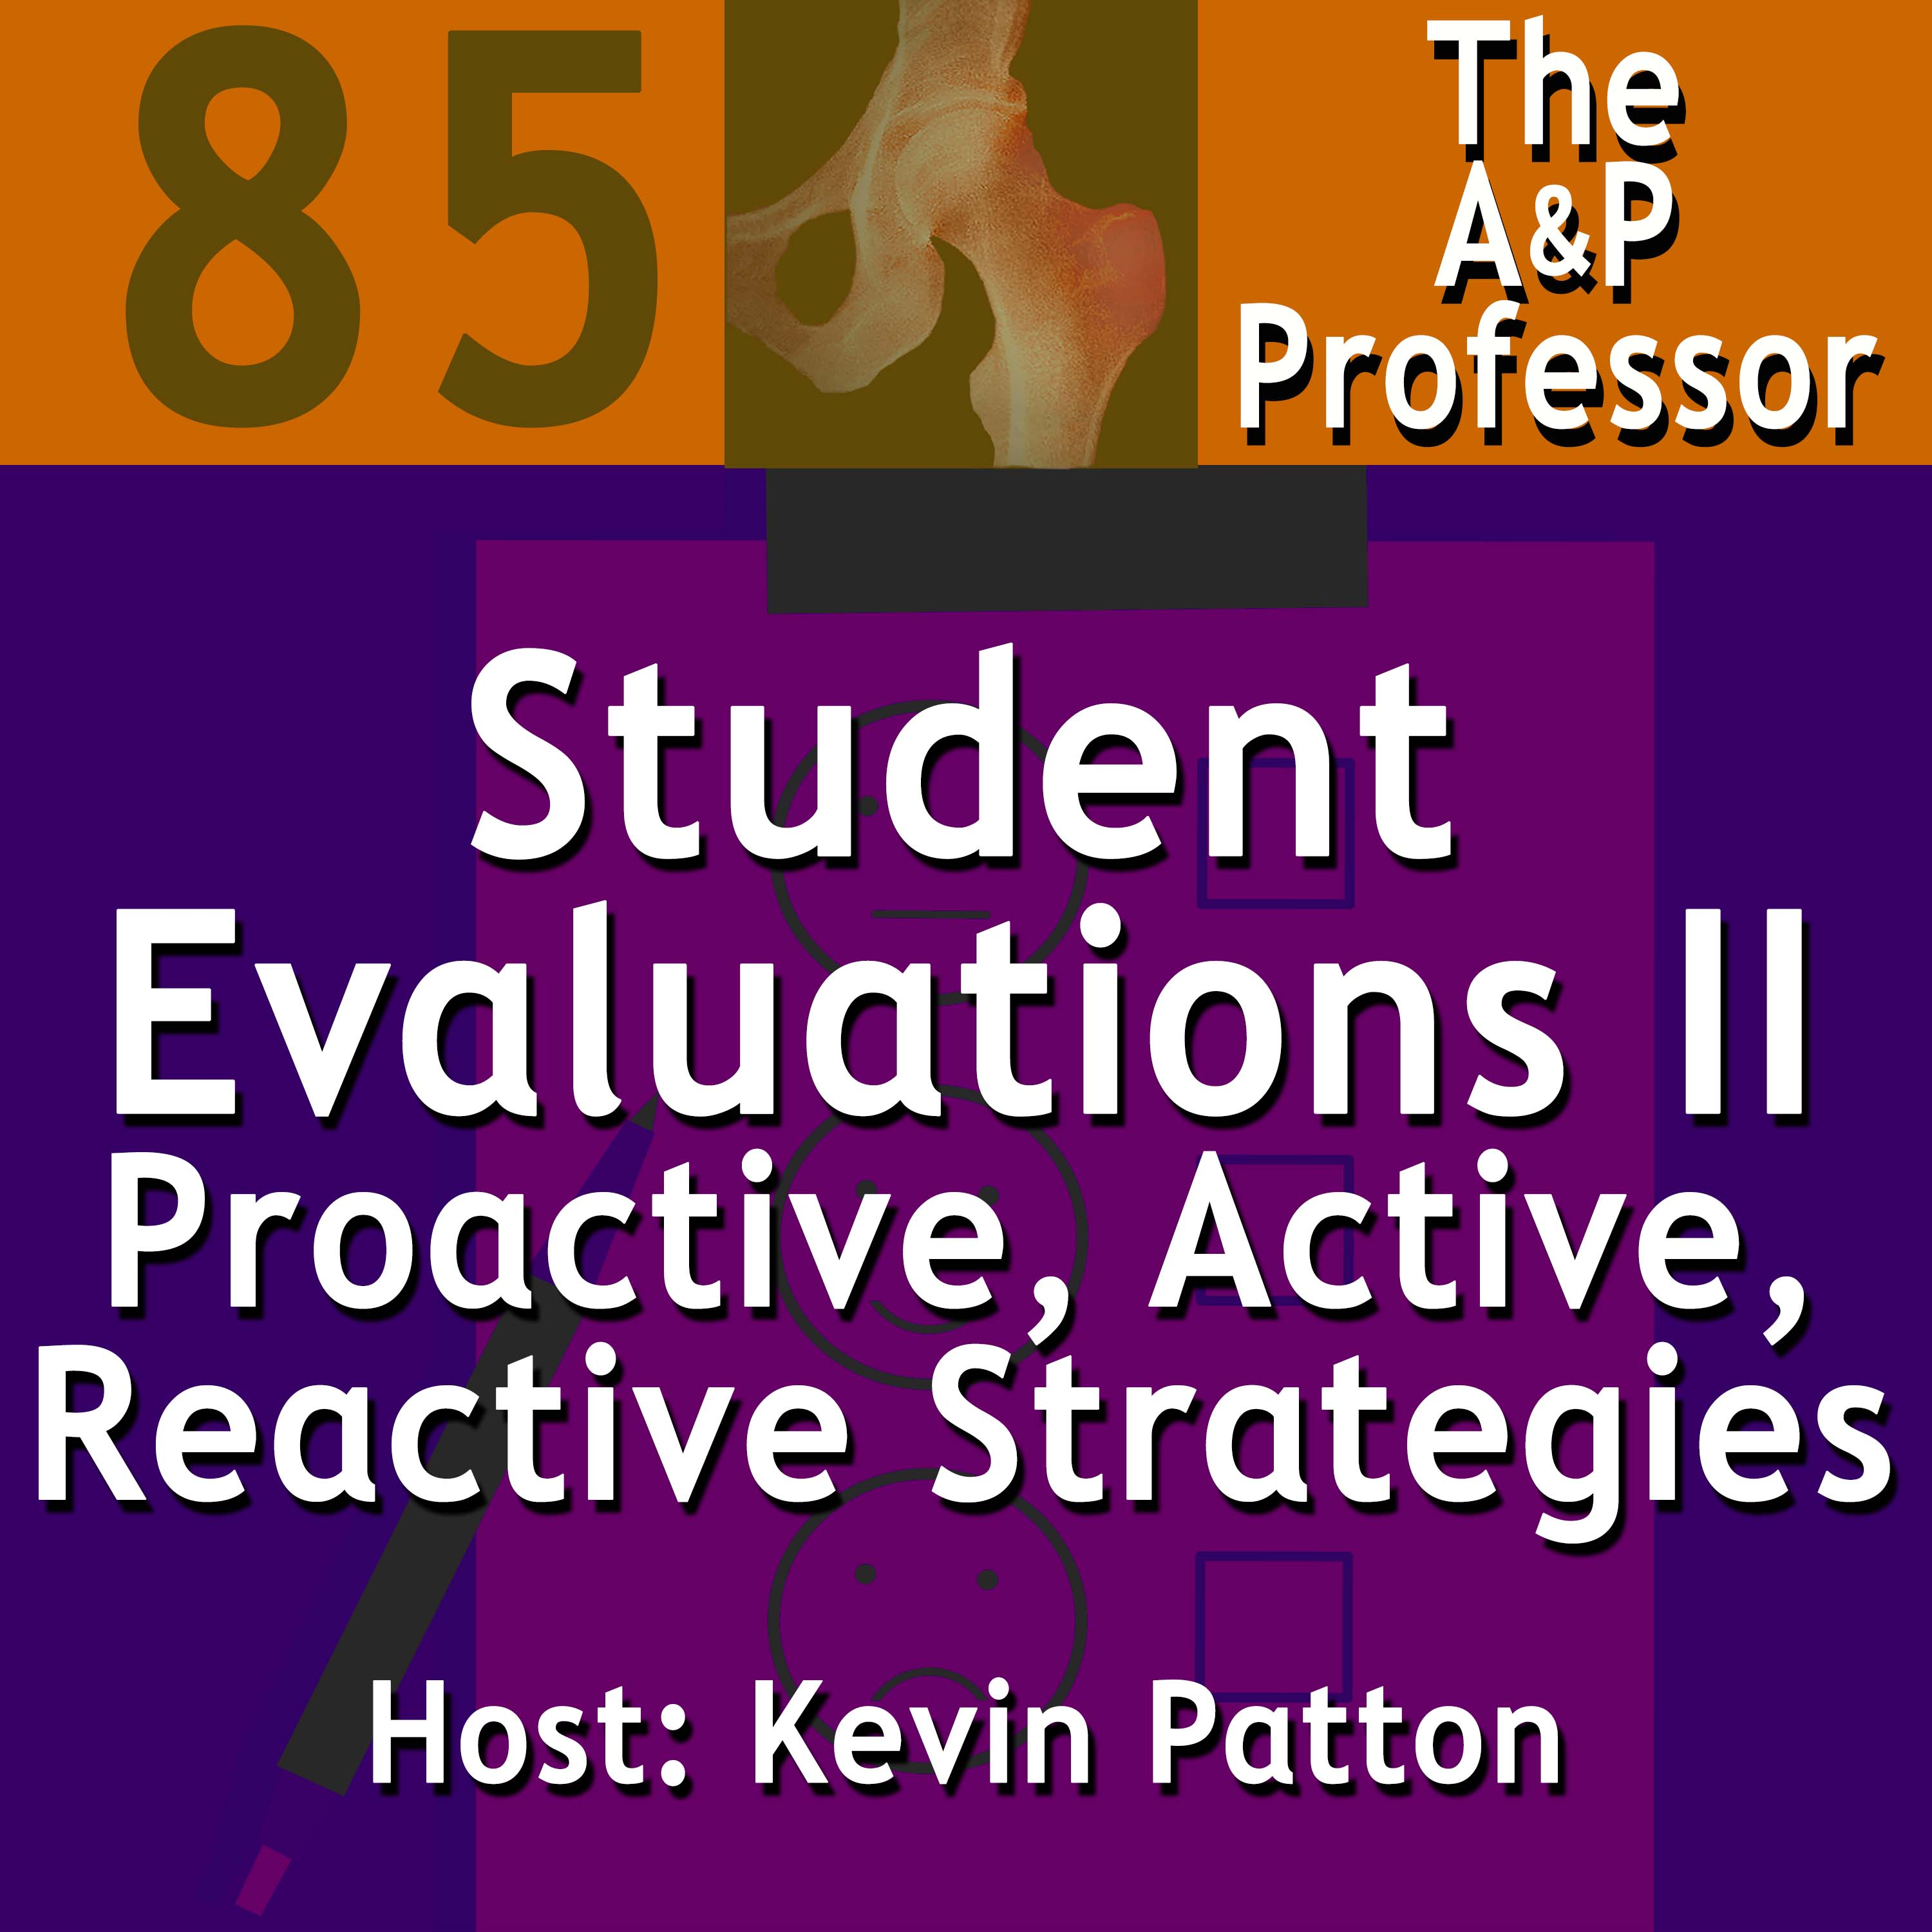 Student Evaluations of Teaching II: Proactive, Active, and Reactive Strategies | TAPP 85